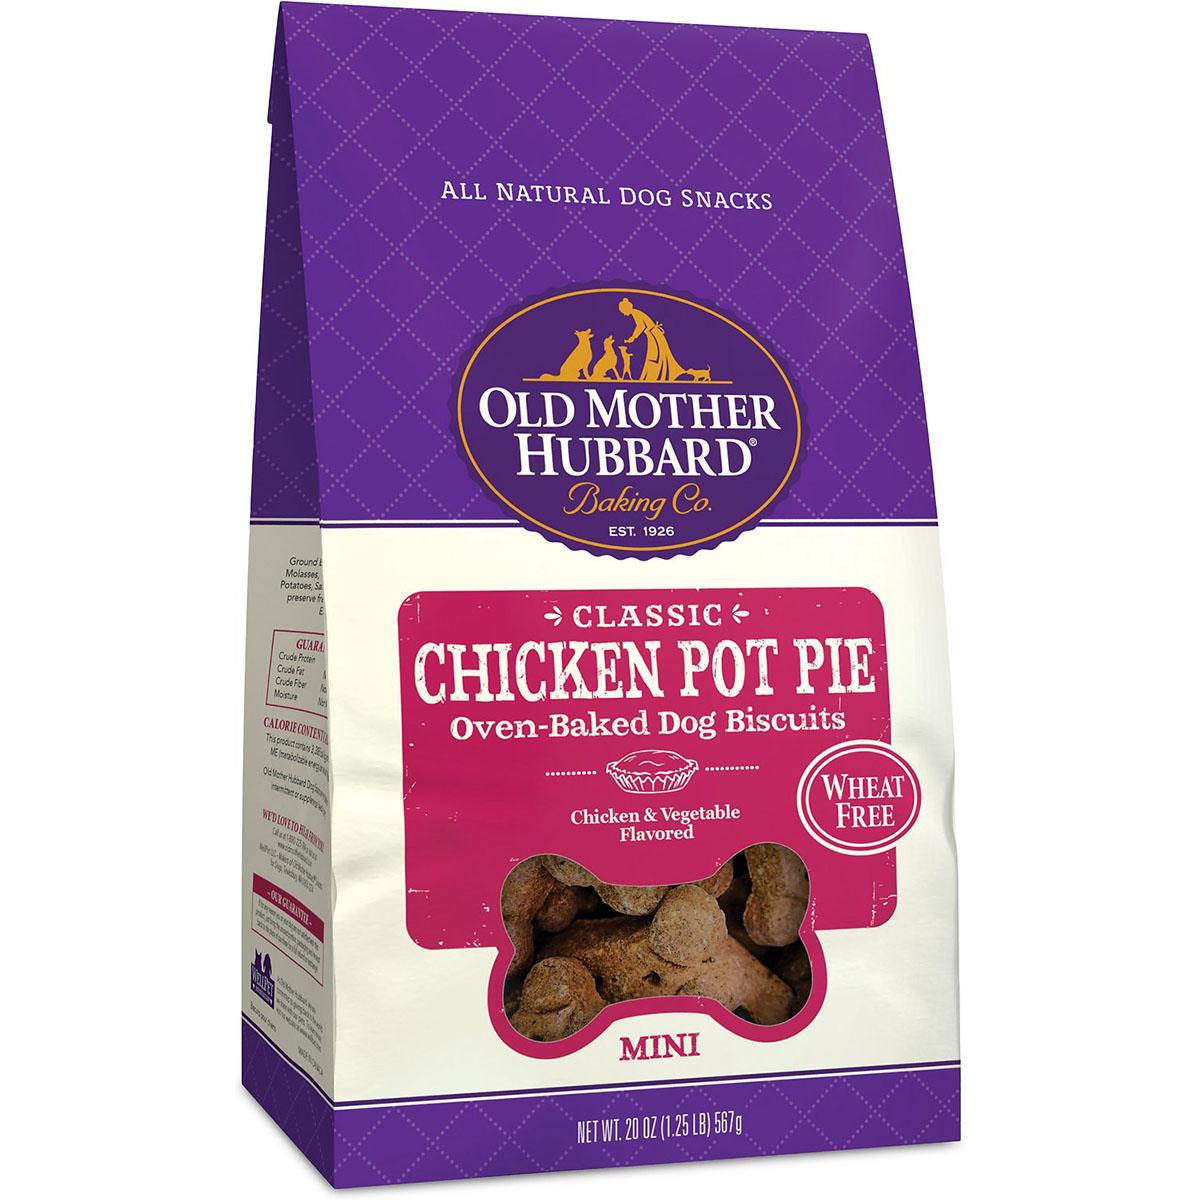 Old Mother Hubbard Classic Mini Chicken Pot Pie Biscuits Baked Dog Treats